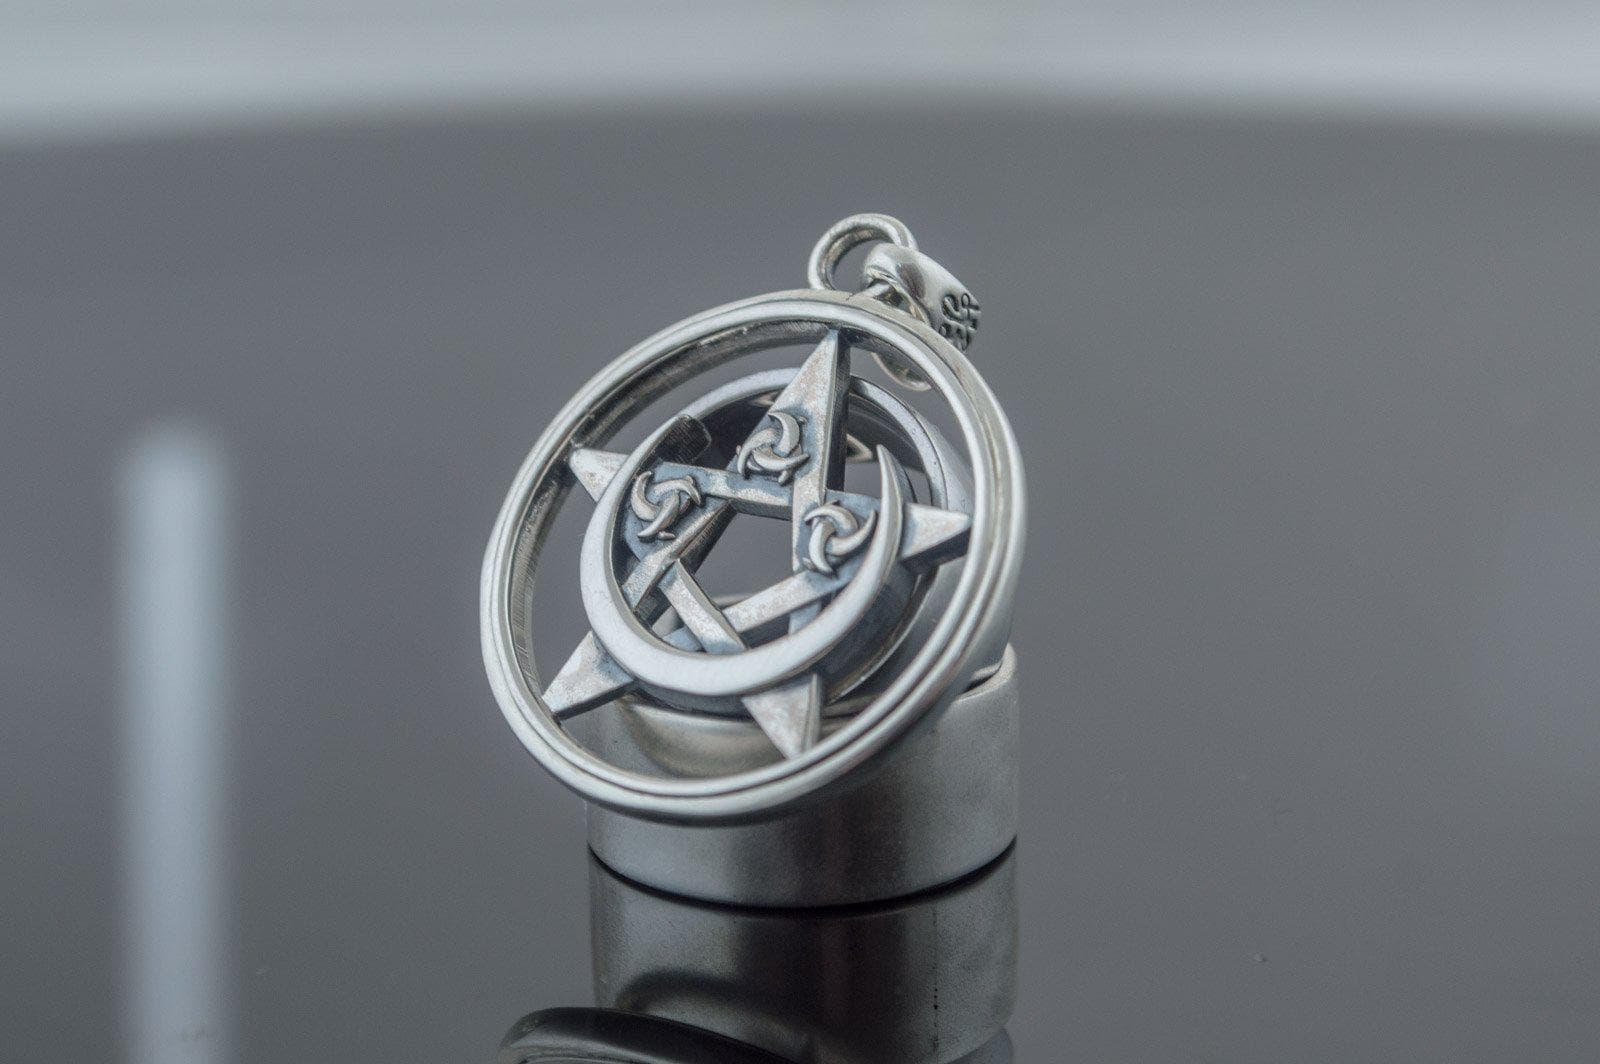 Pendants & Necklaces Wiccan Crescent Moon on Pentacle Sterling Silver Pendant Ancient Treasures Ancientreasures Viking Odin Thor Mjolnir Celtic Ancient Egypt Norse Norse Mythology